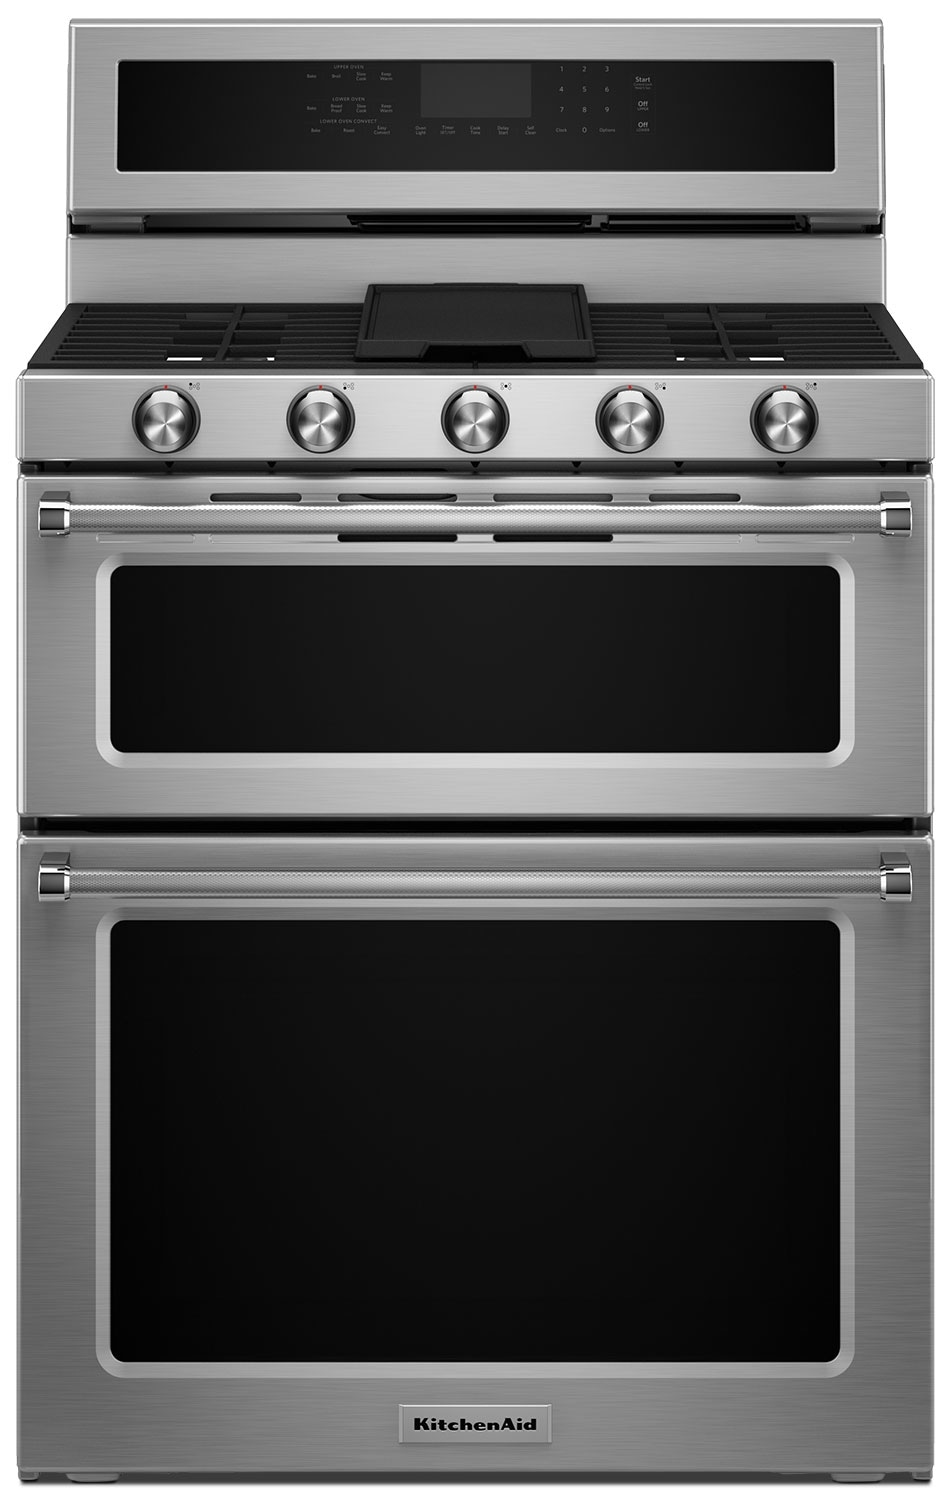 Cooking Products - KitchenAid Stainless Steel Dual-Fuel Double Convection Range (6.7 Cu. Ft.) - KFDD500ESS